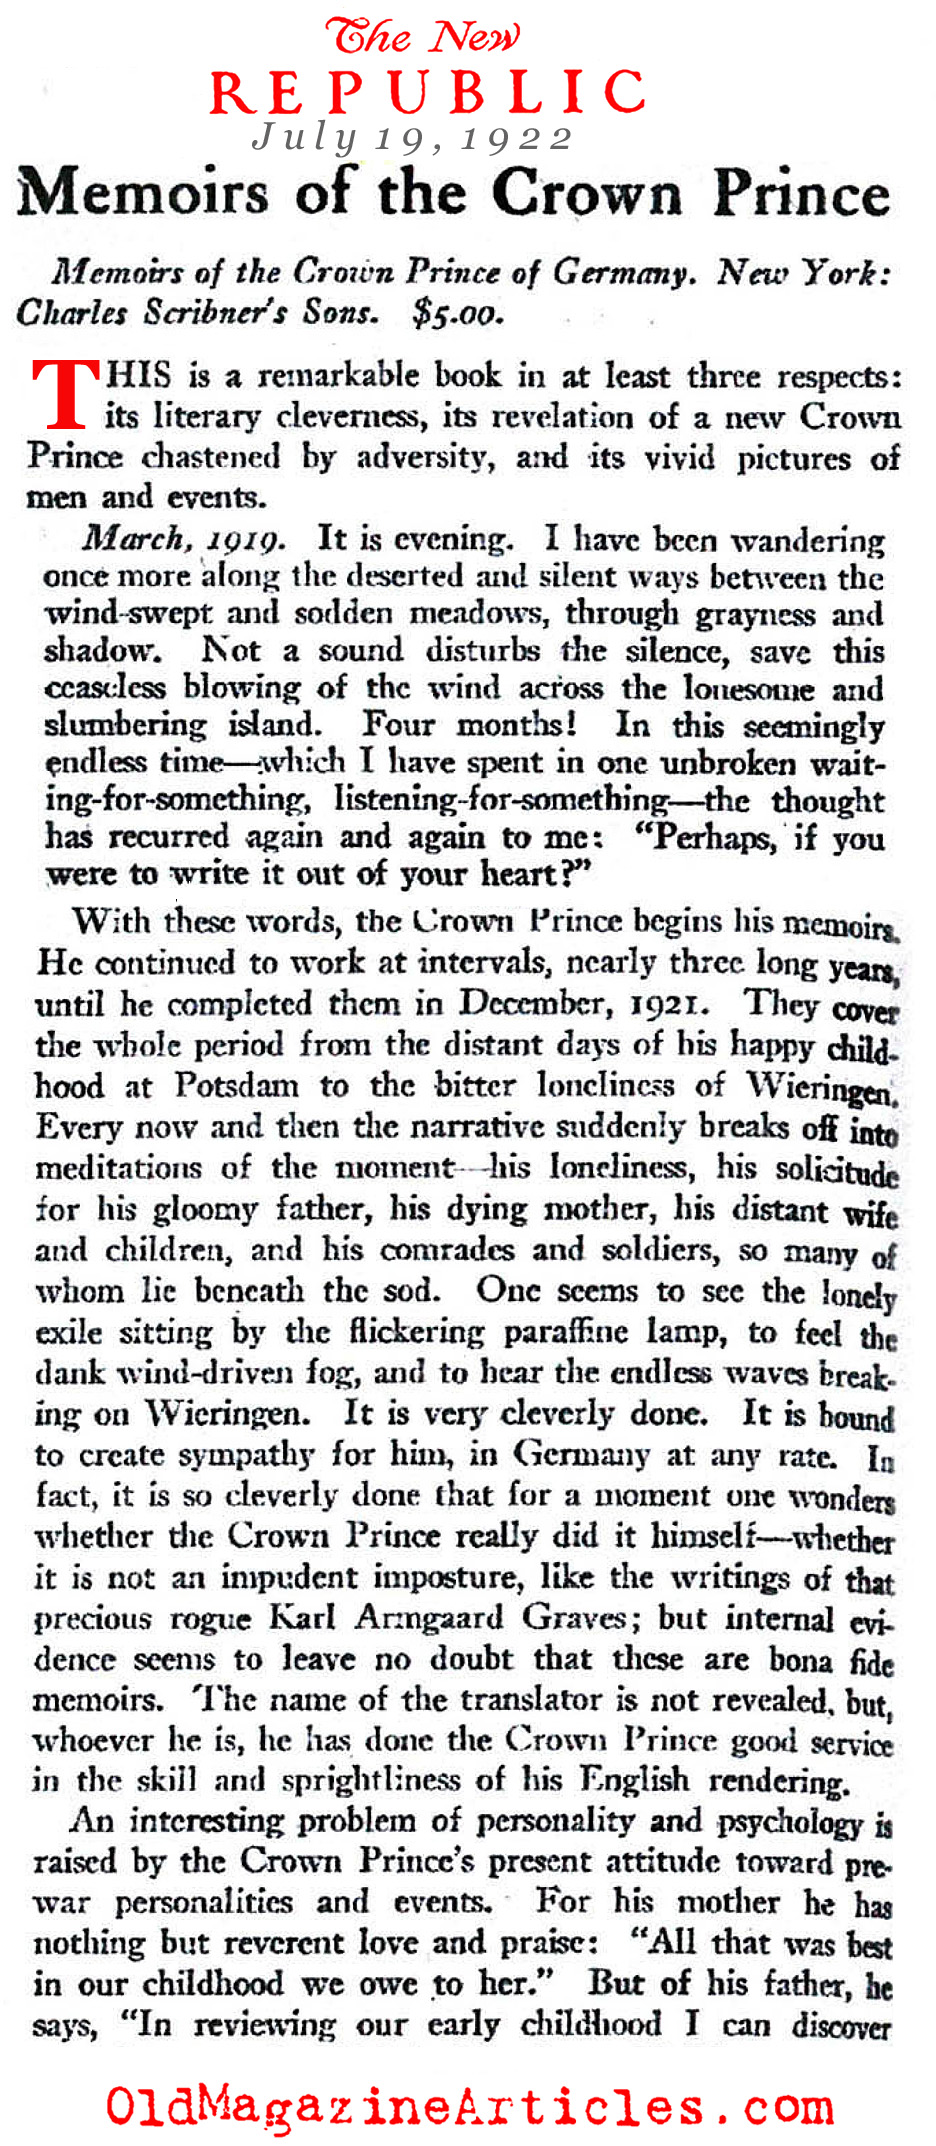 A Review of the Memoir by the Crown Prince (The New Republic, 1922)